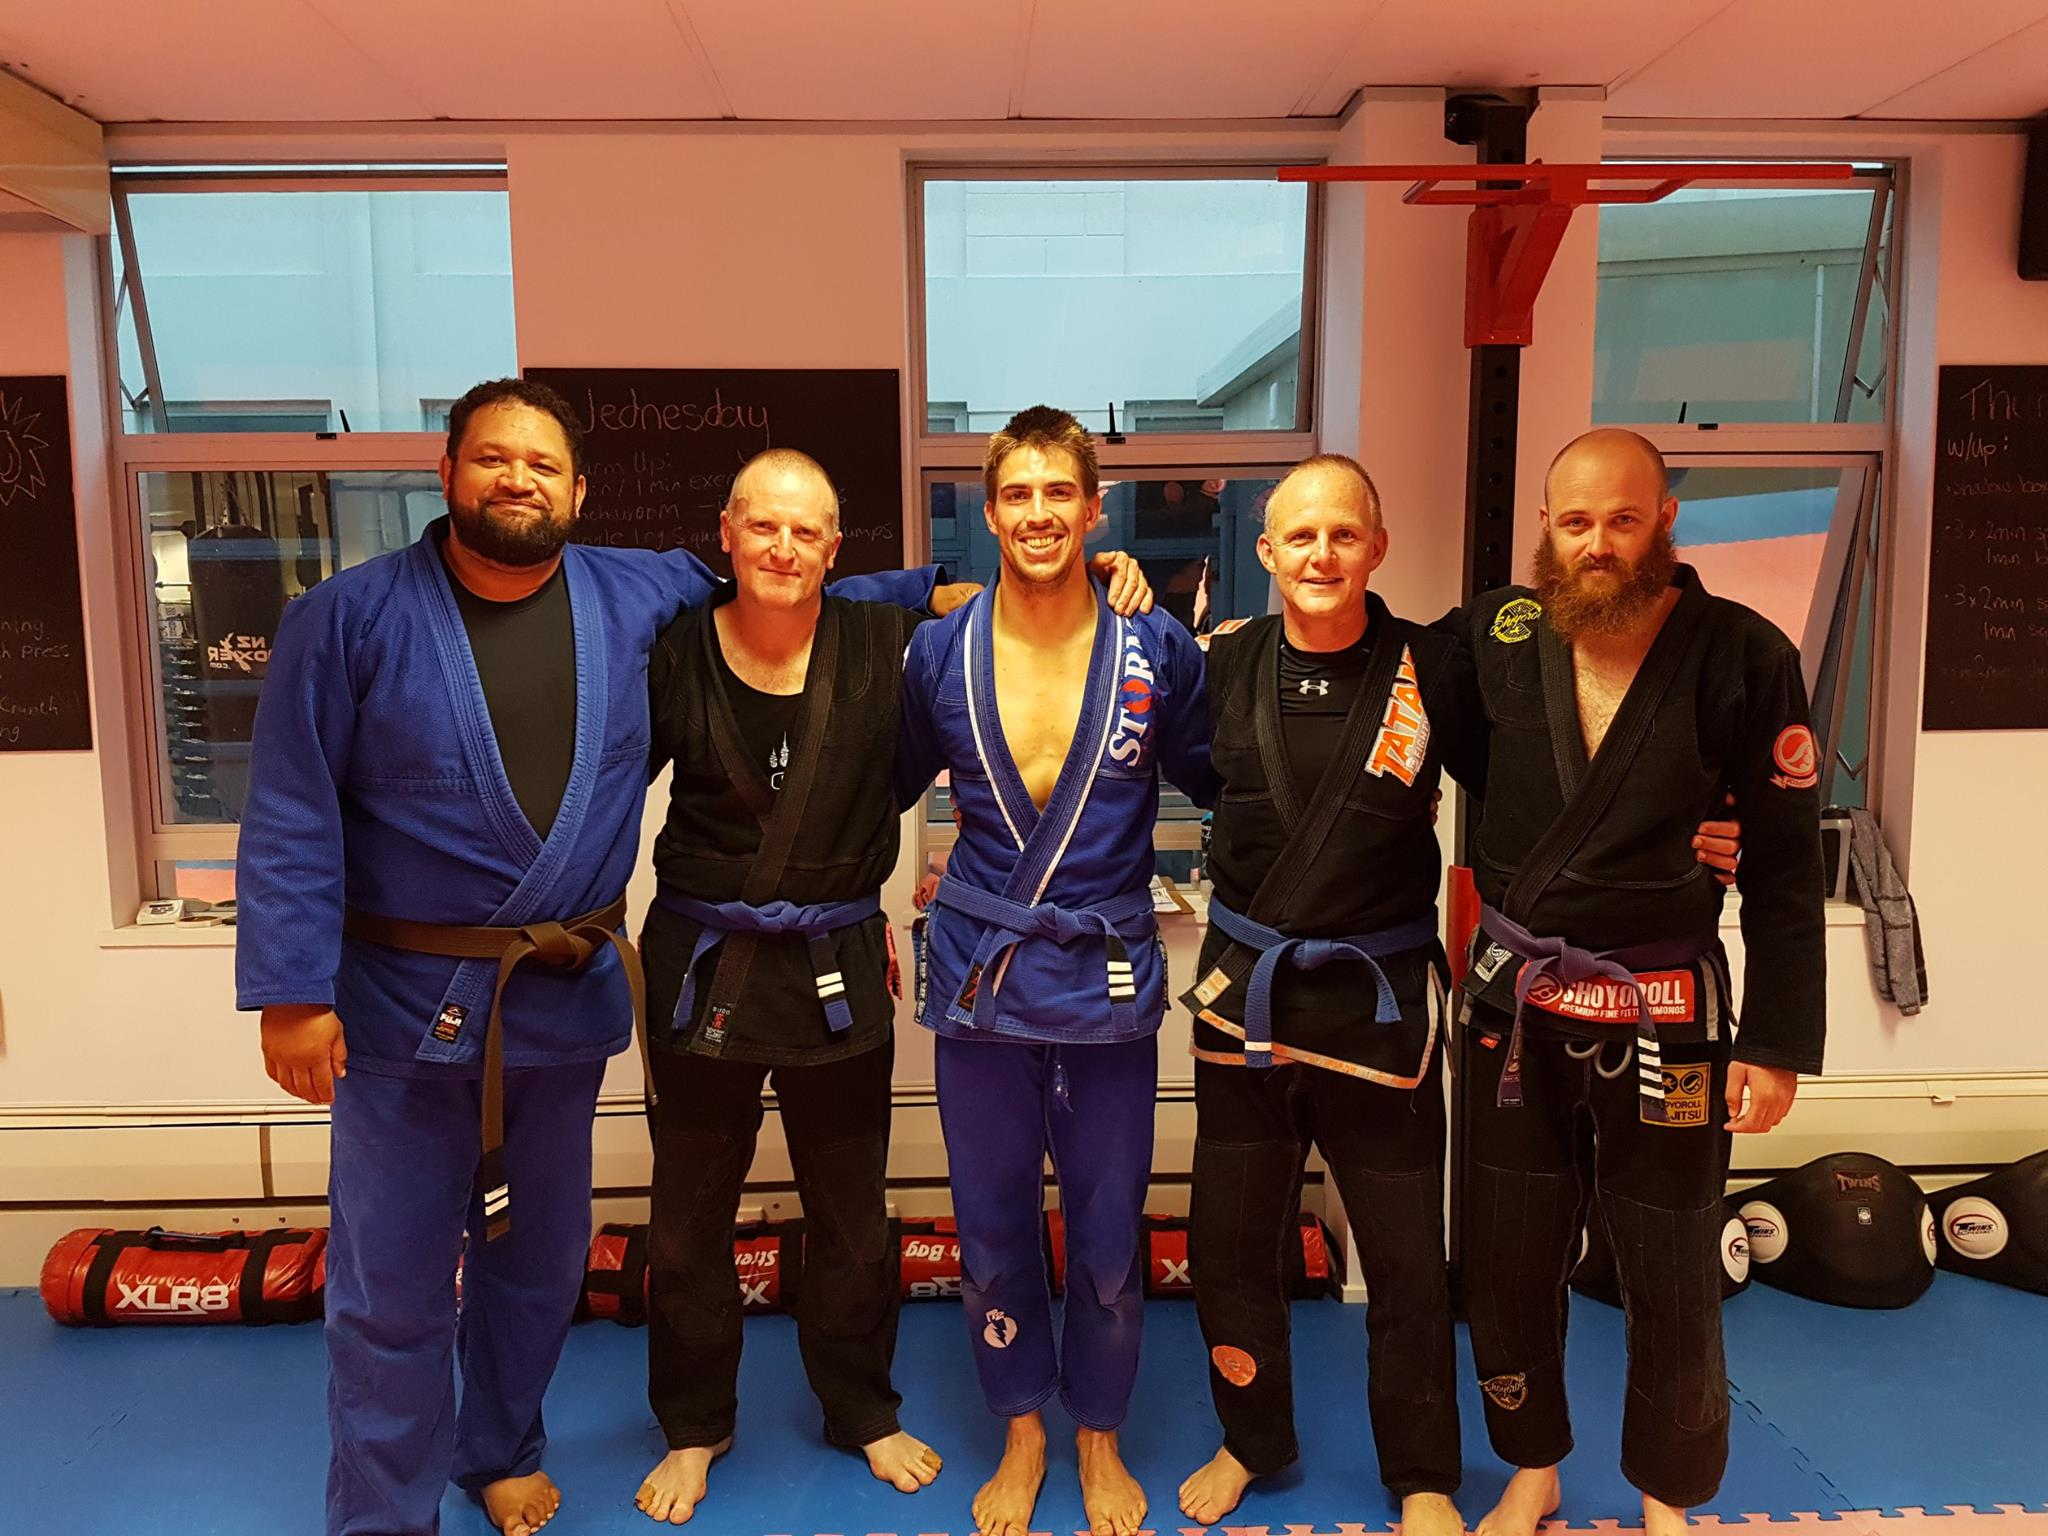 From left to right: Coach Jay, blue belts Danny, James, and Jimmy who all achieved new tabs, and Coach Andrew.